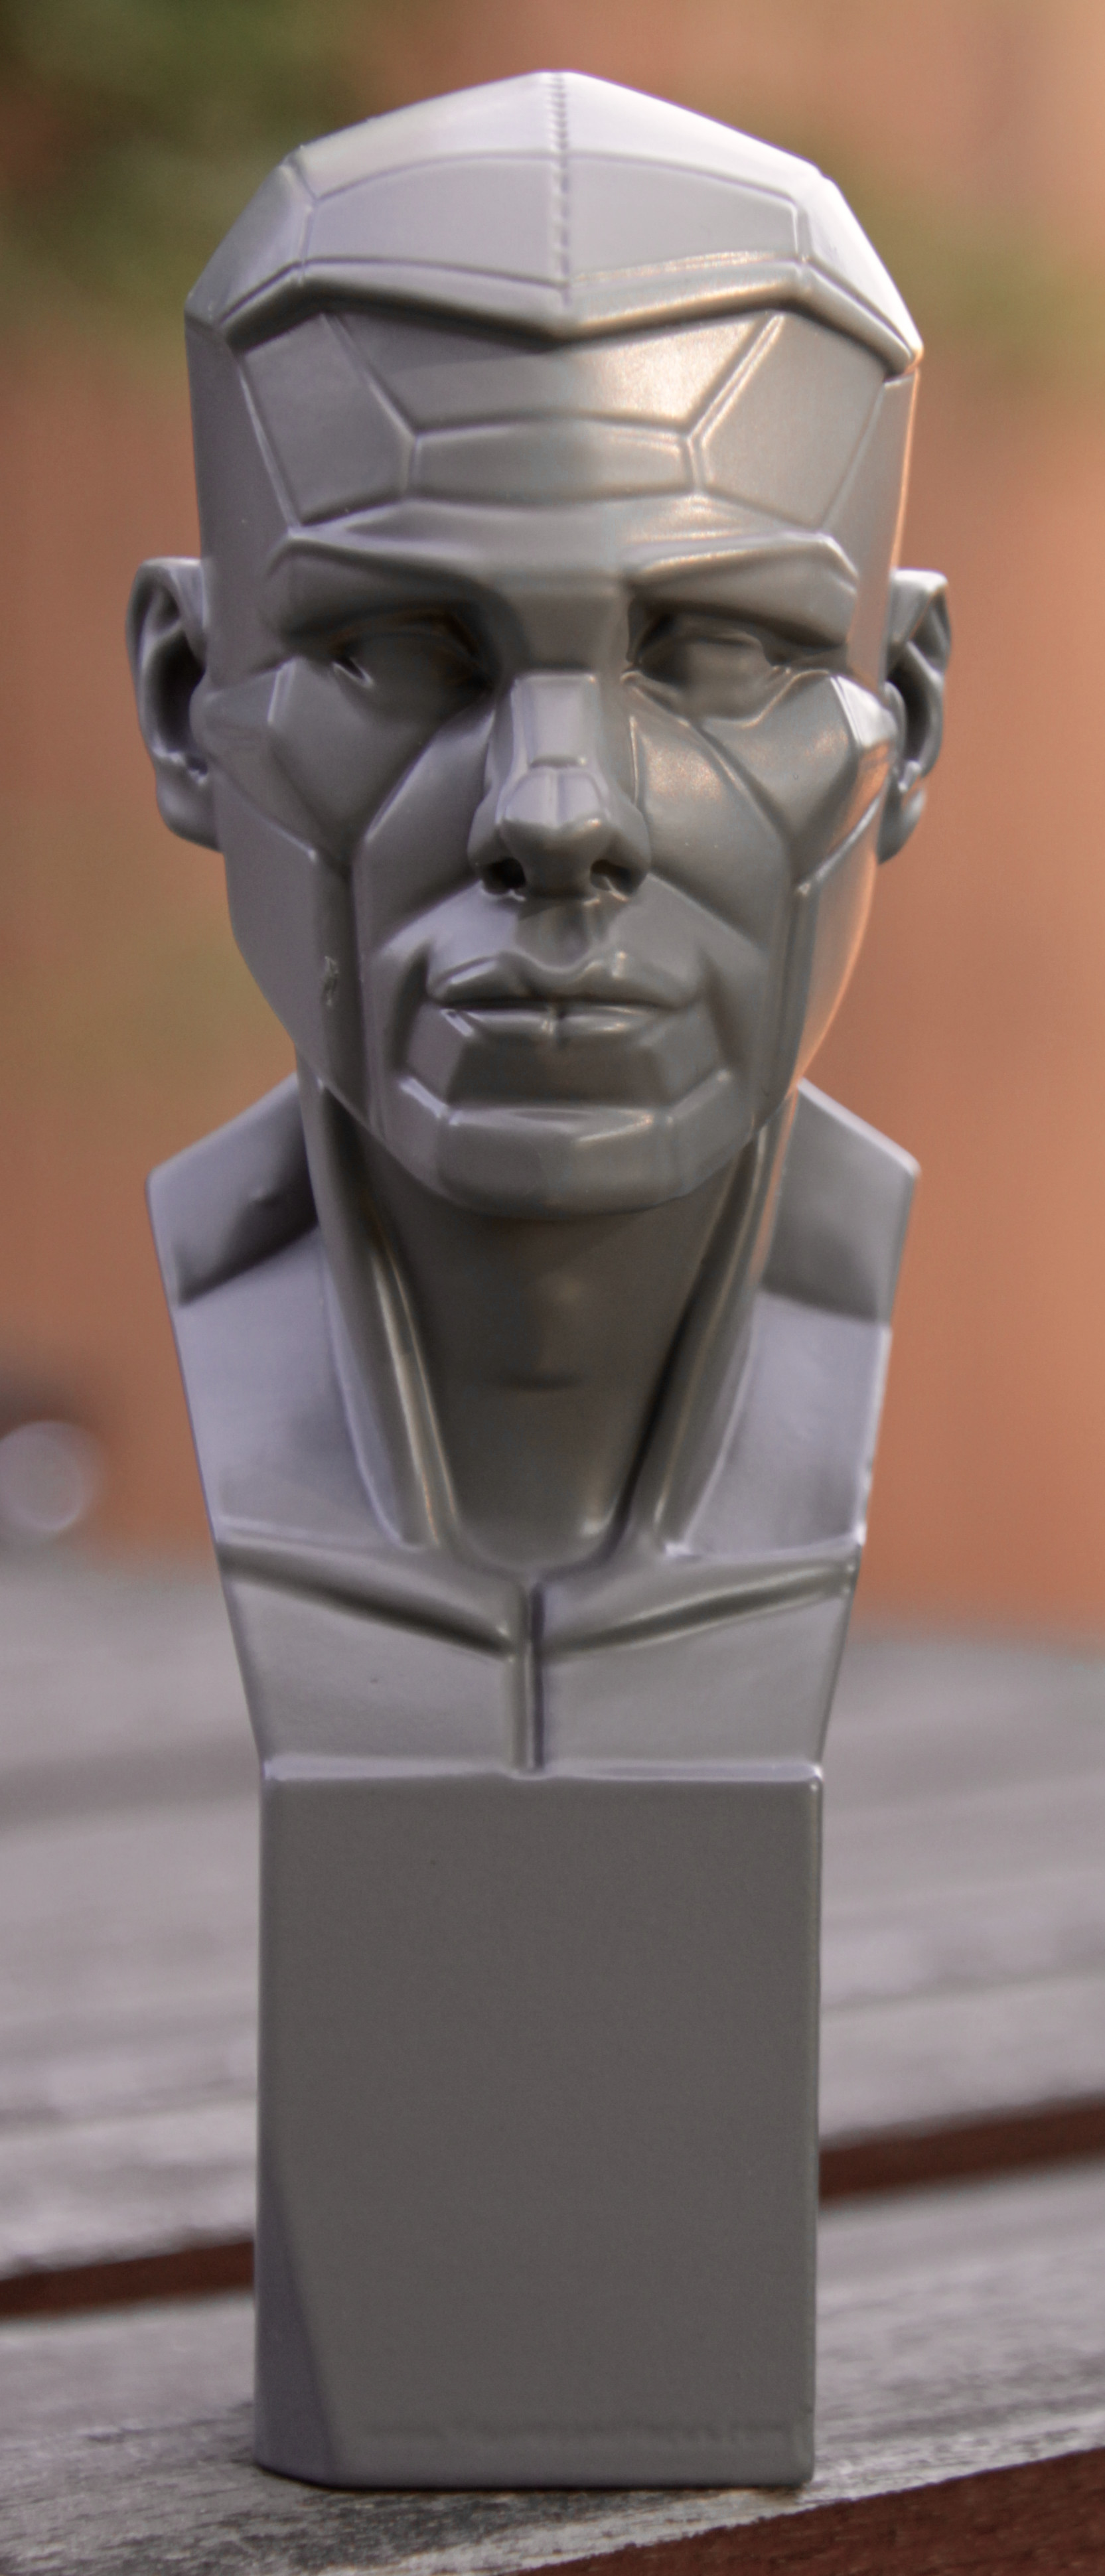 here's a photo of John Brown's head study model. very helpful!